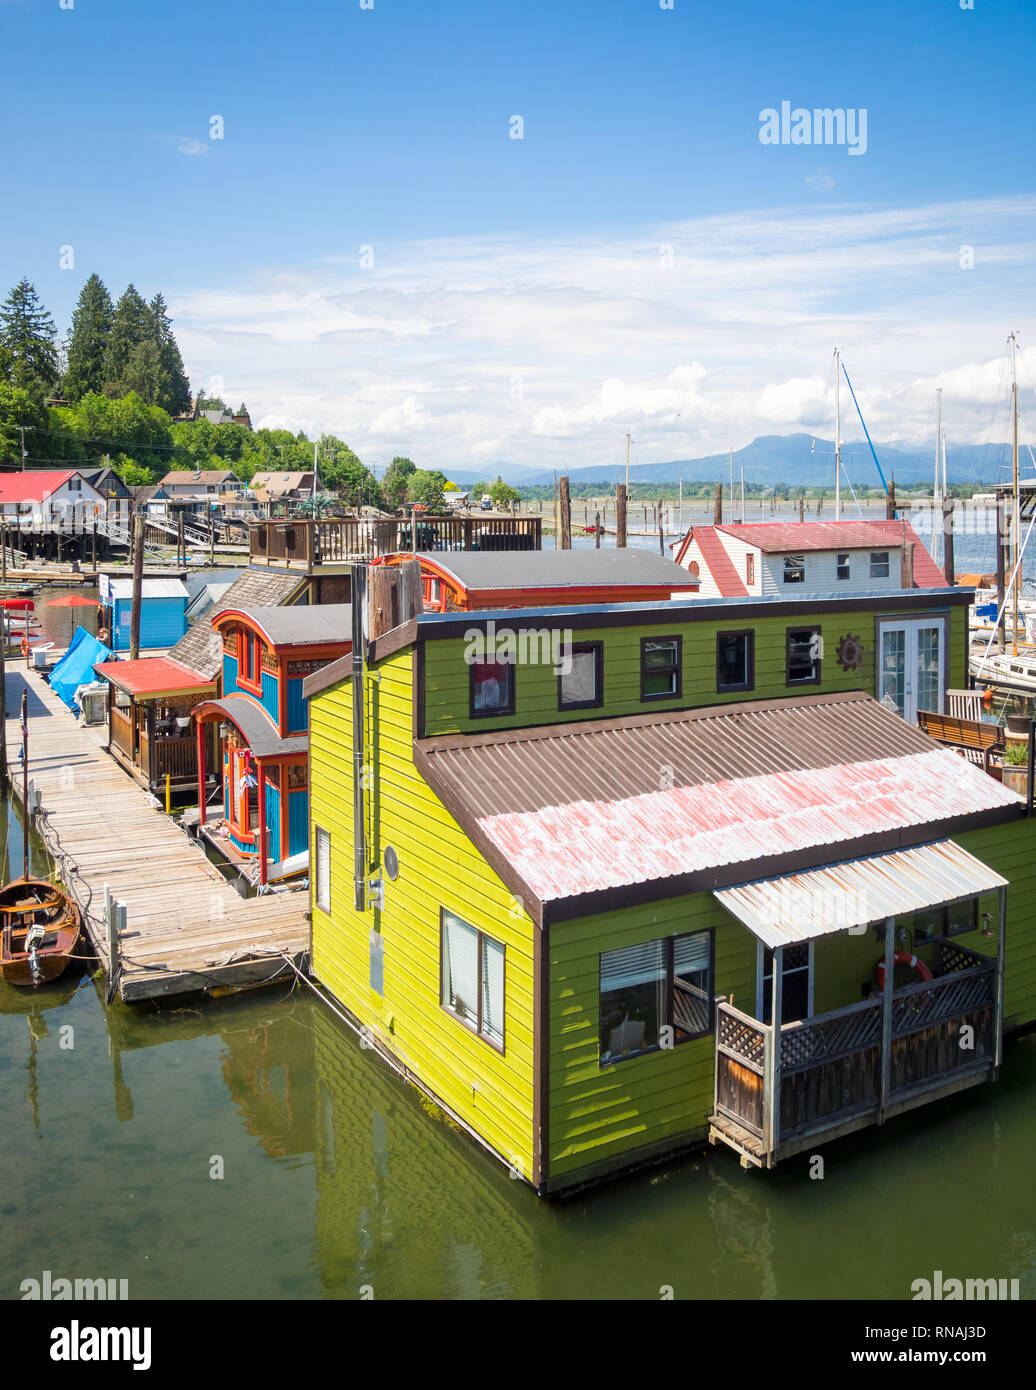 Floating homes and houseboats in Cowichan Bay, British Columbia, Canada. - Stock Image